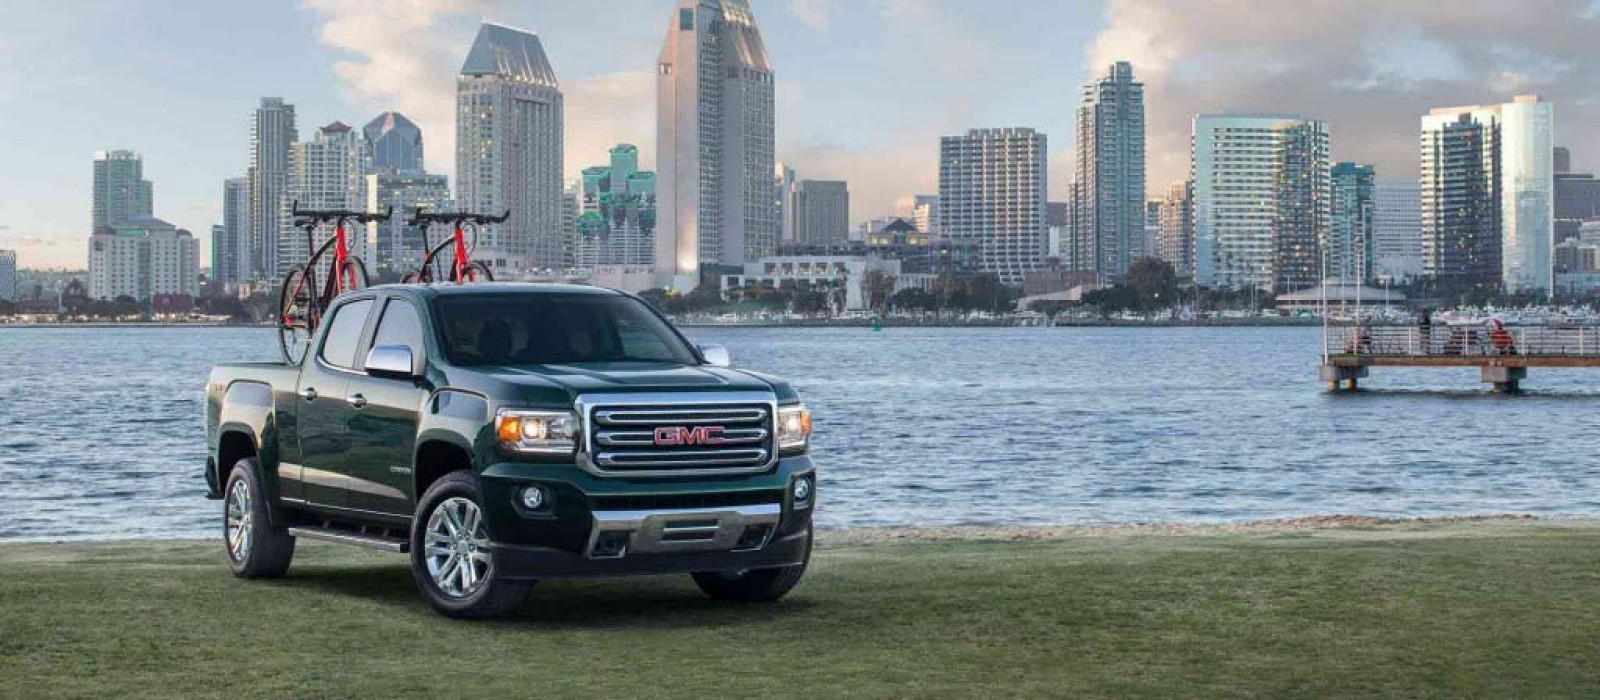 gmc trucks michigan toward leases ma off deals lease race market programs truck